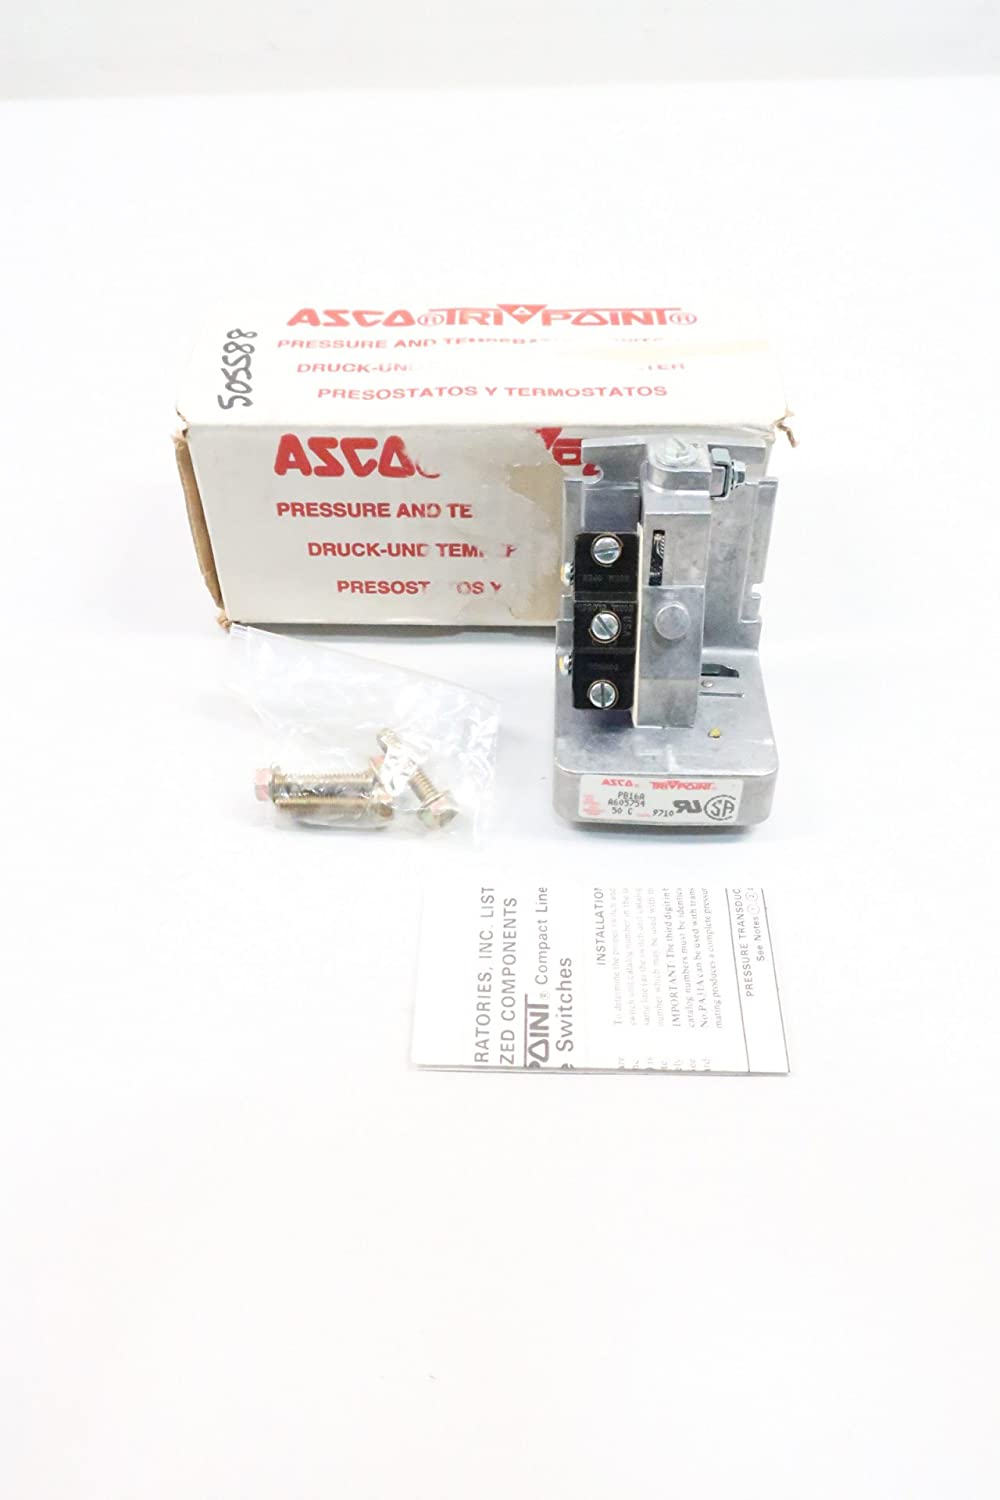 ASCO PB16A TRIPOINT PRESSURE SWITCH D619685: Amazon.com: Industrial & Scientific